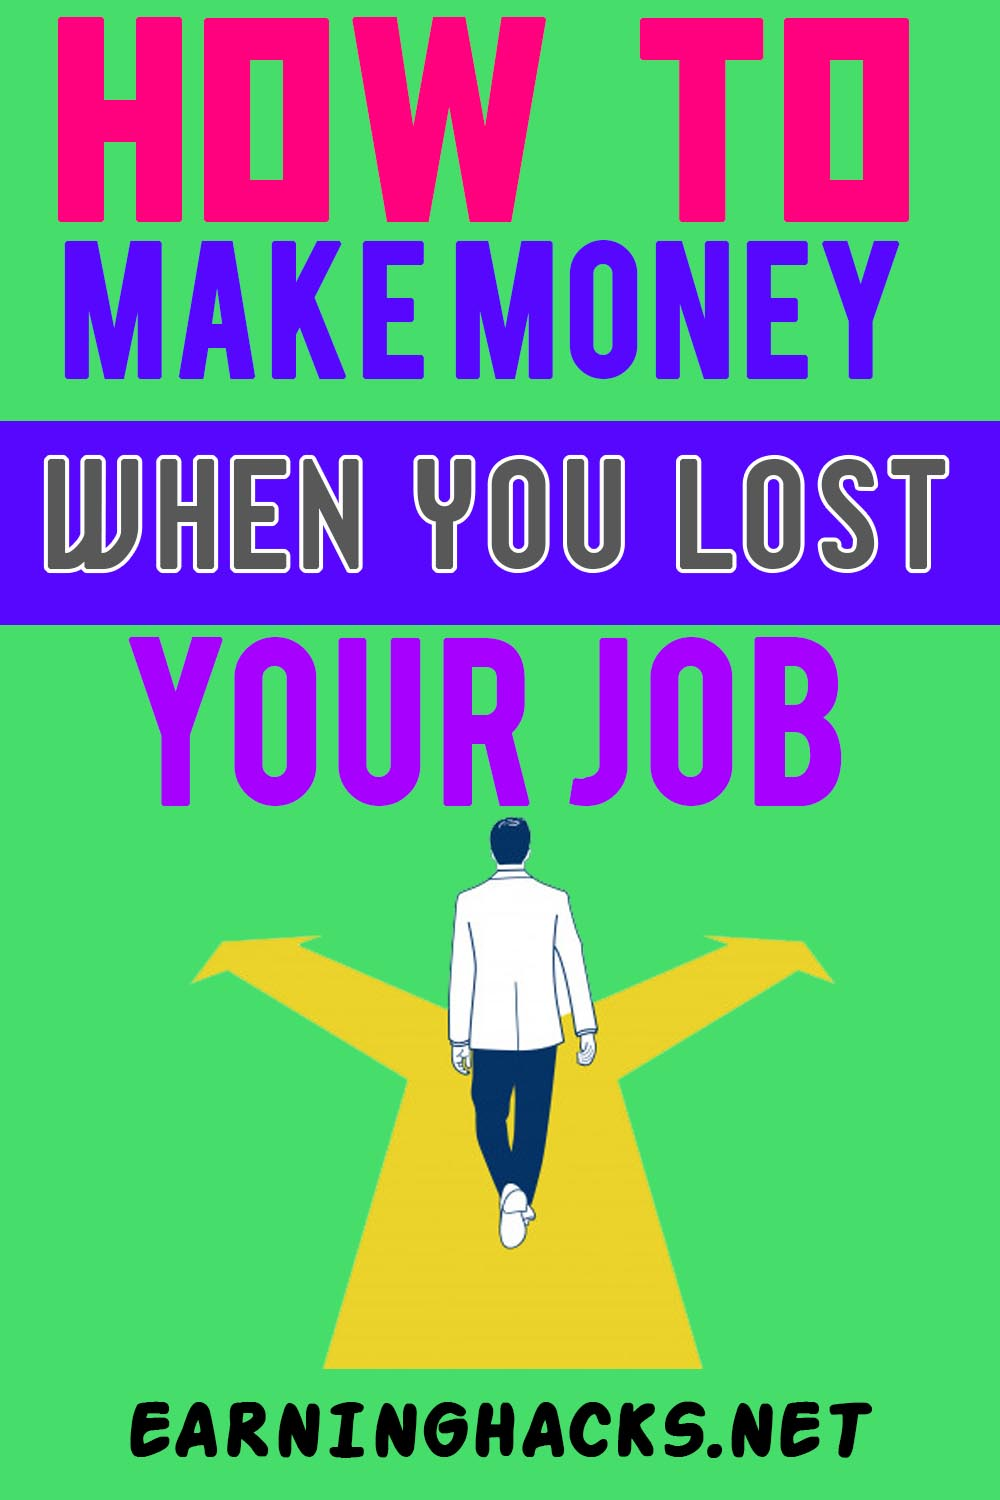 How To Make Money When You Lost Your Job